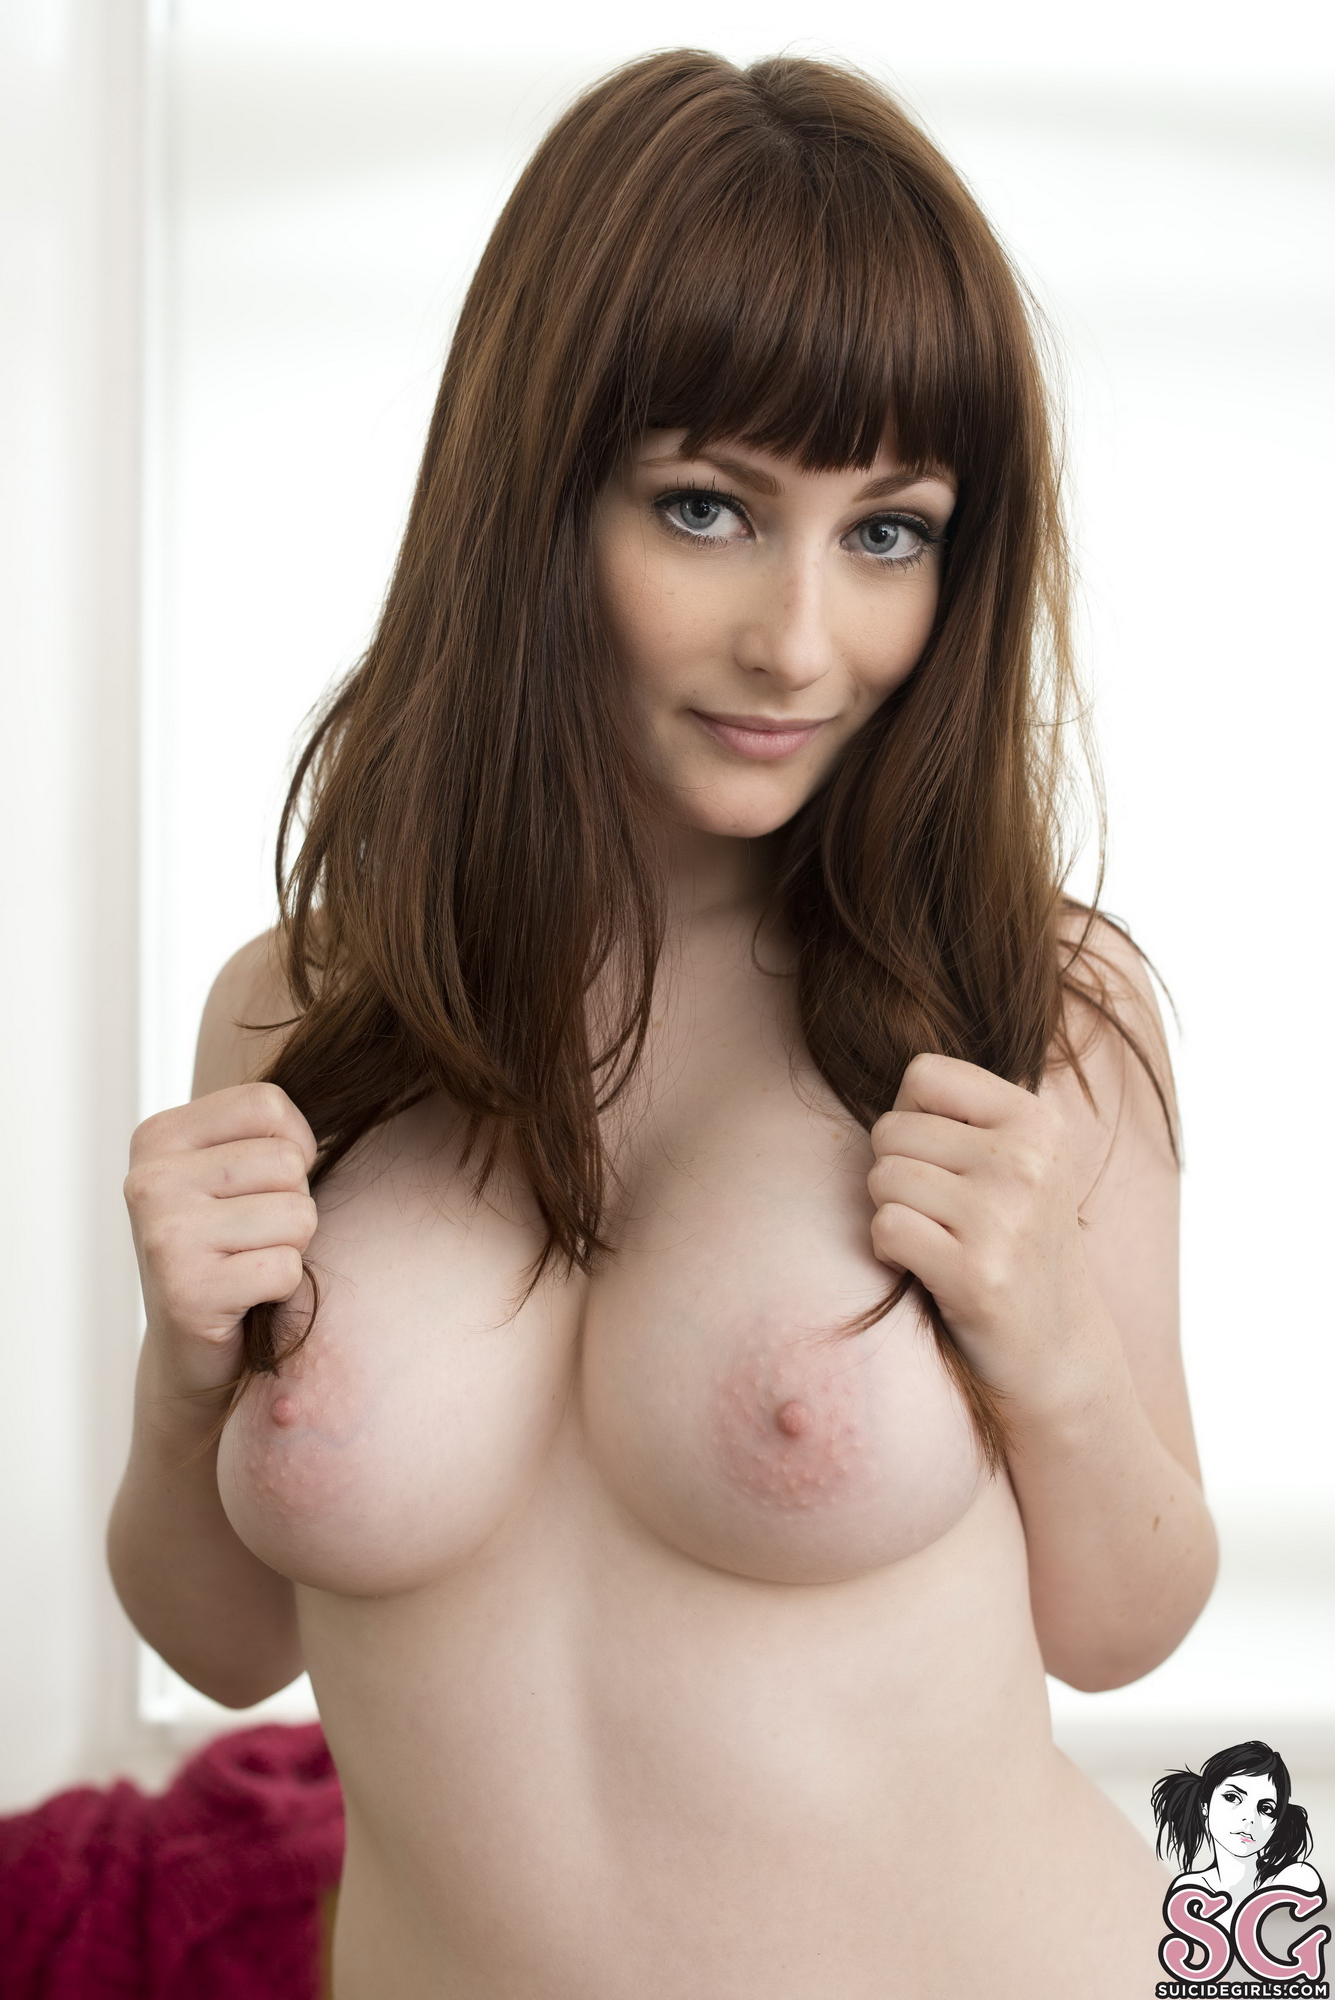 Nude tit suicide girl can recommend